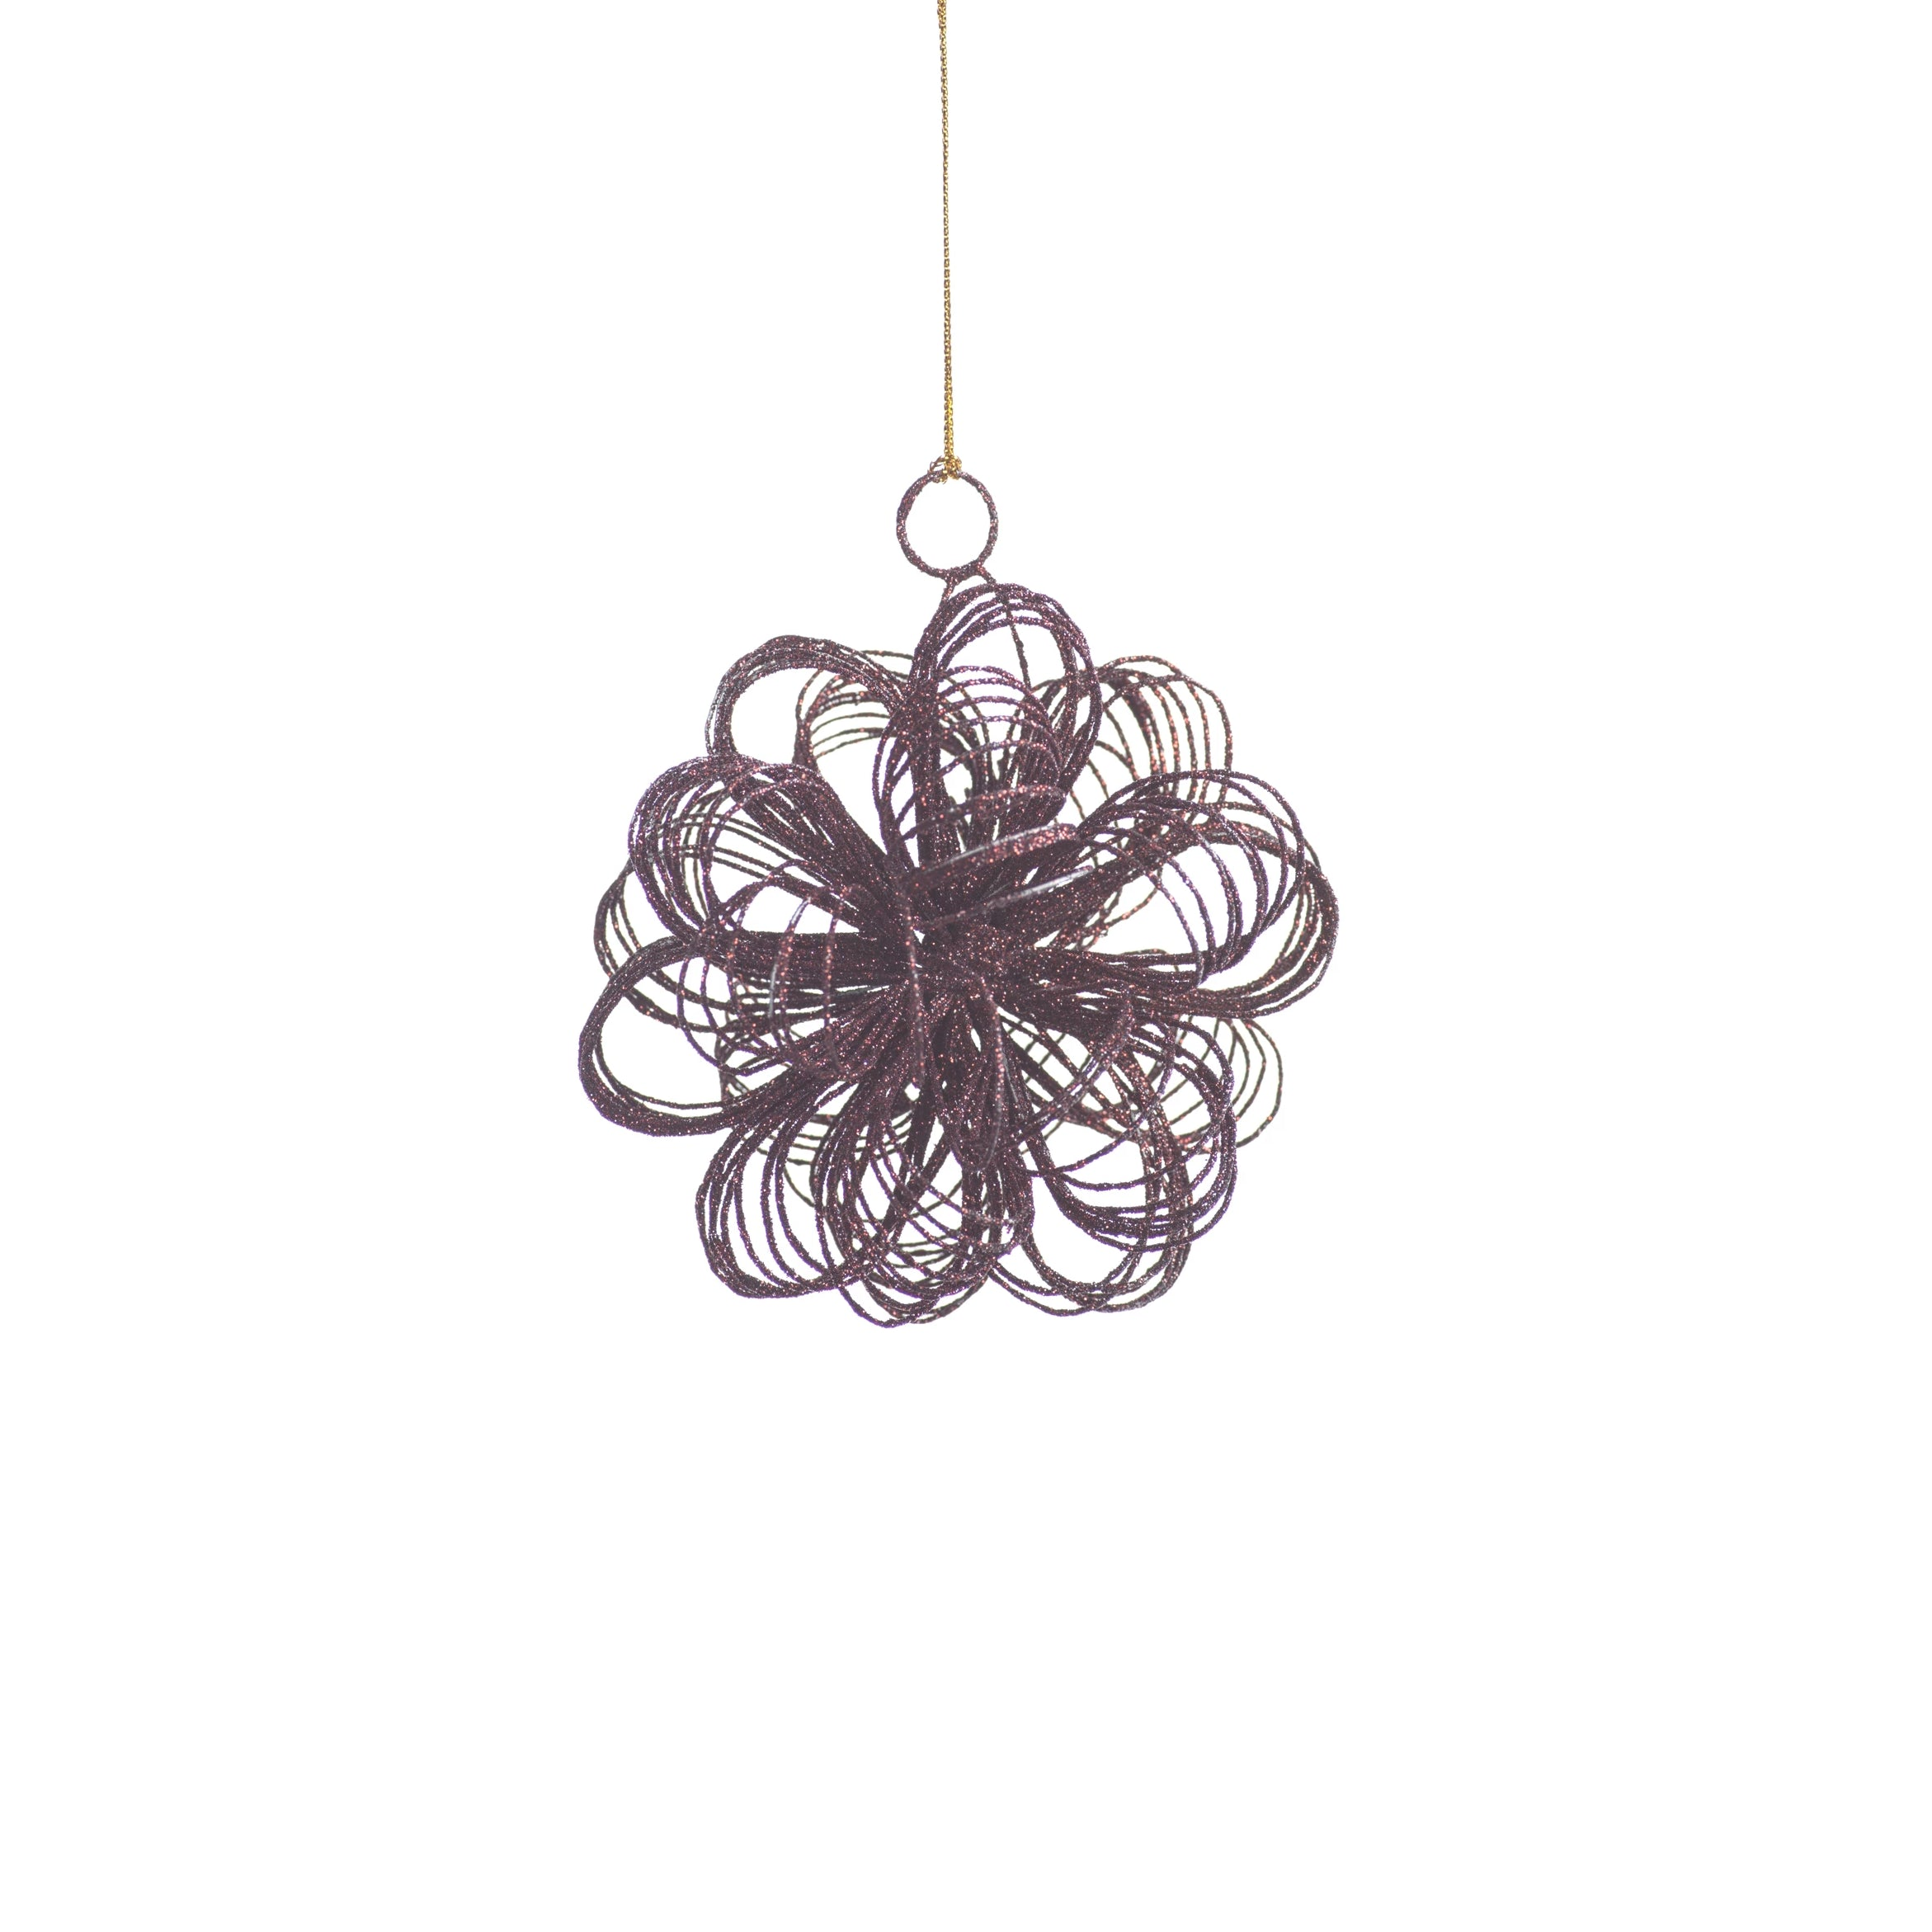 Oval Loop Ornament - 5 Colors - CARLYLE AVENUE